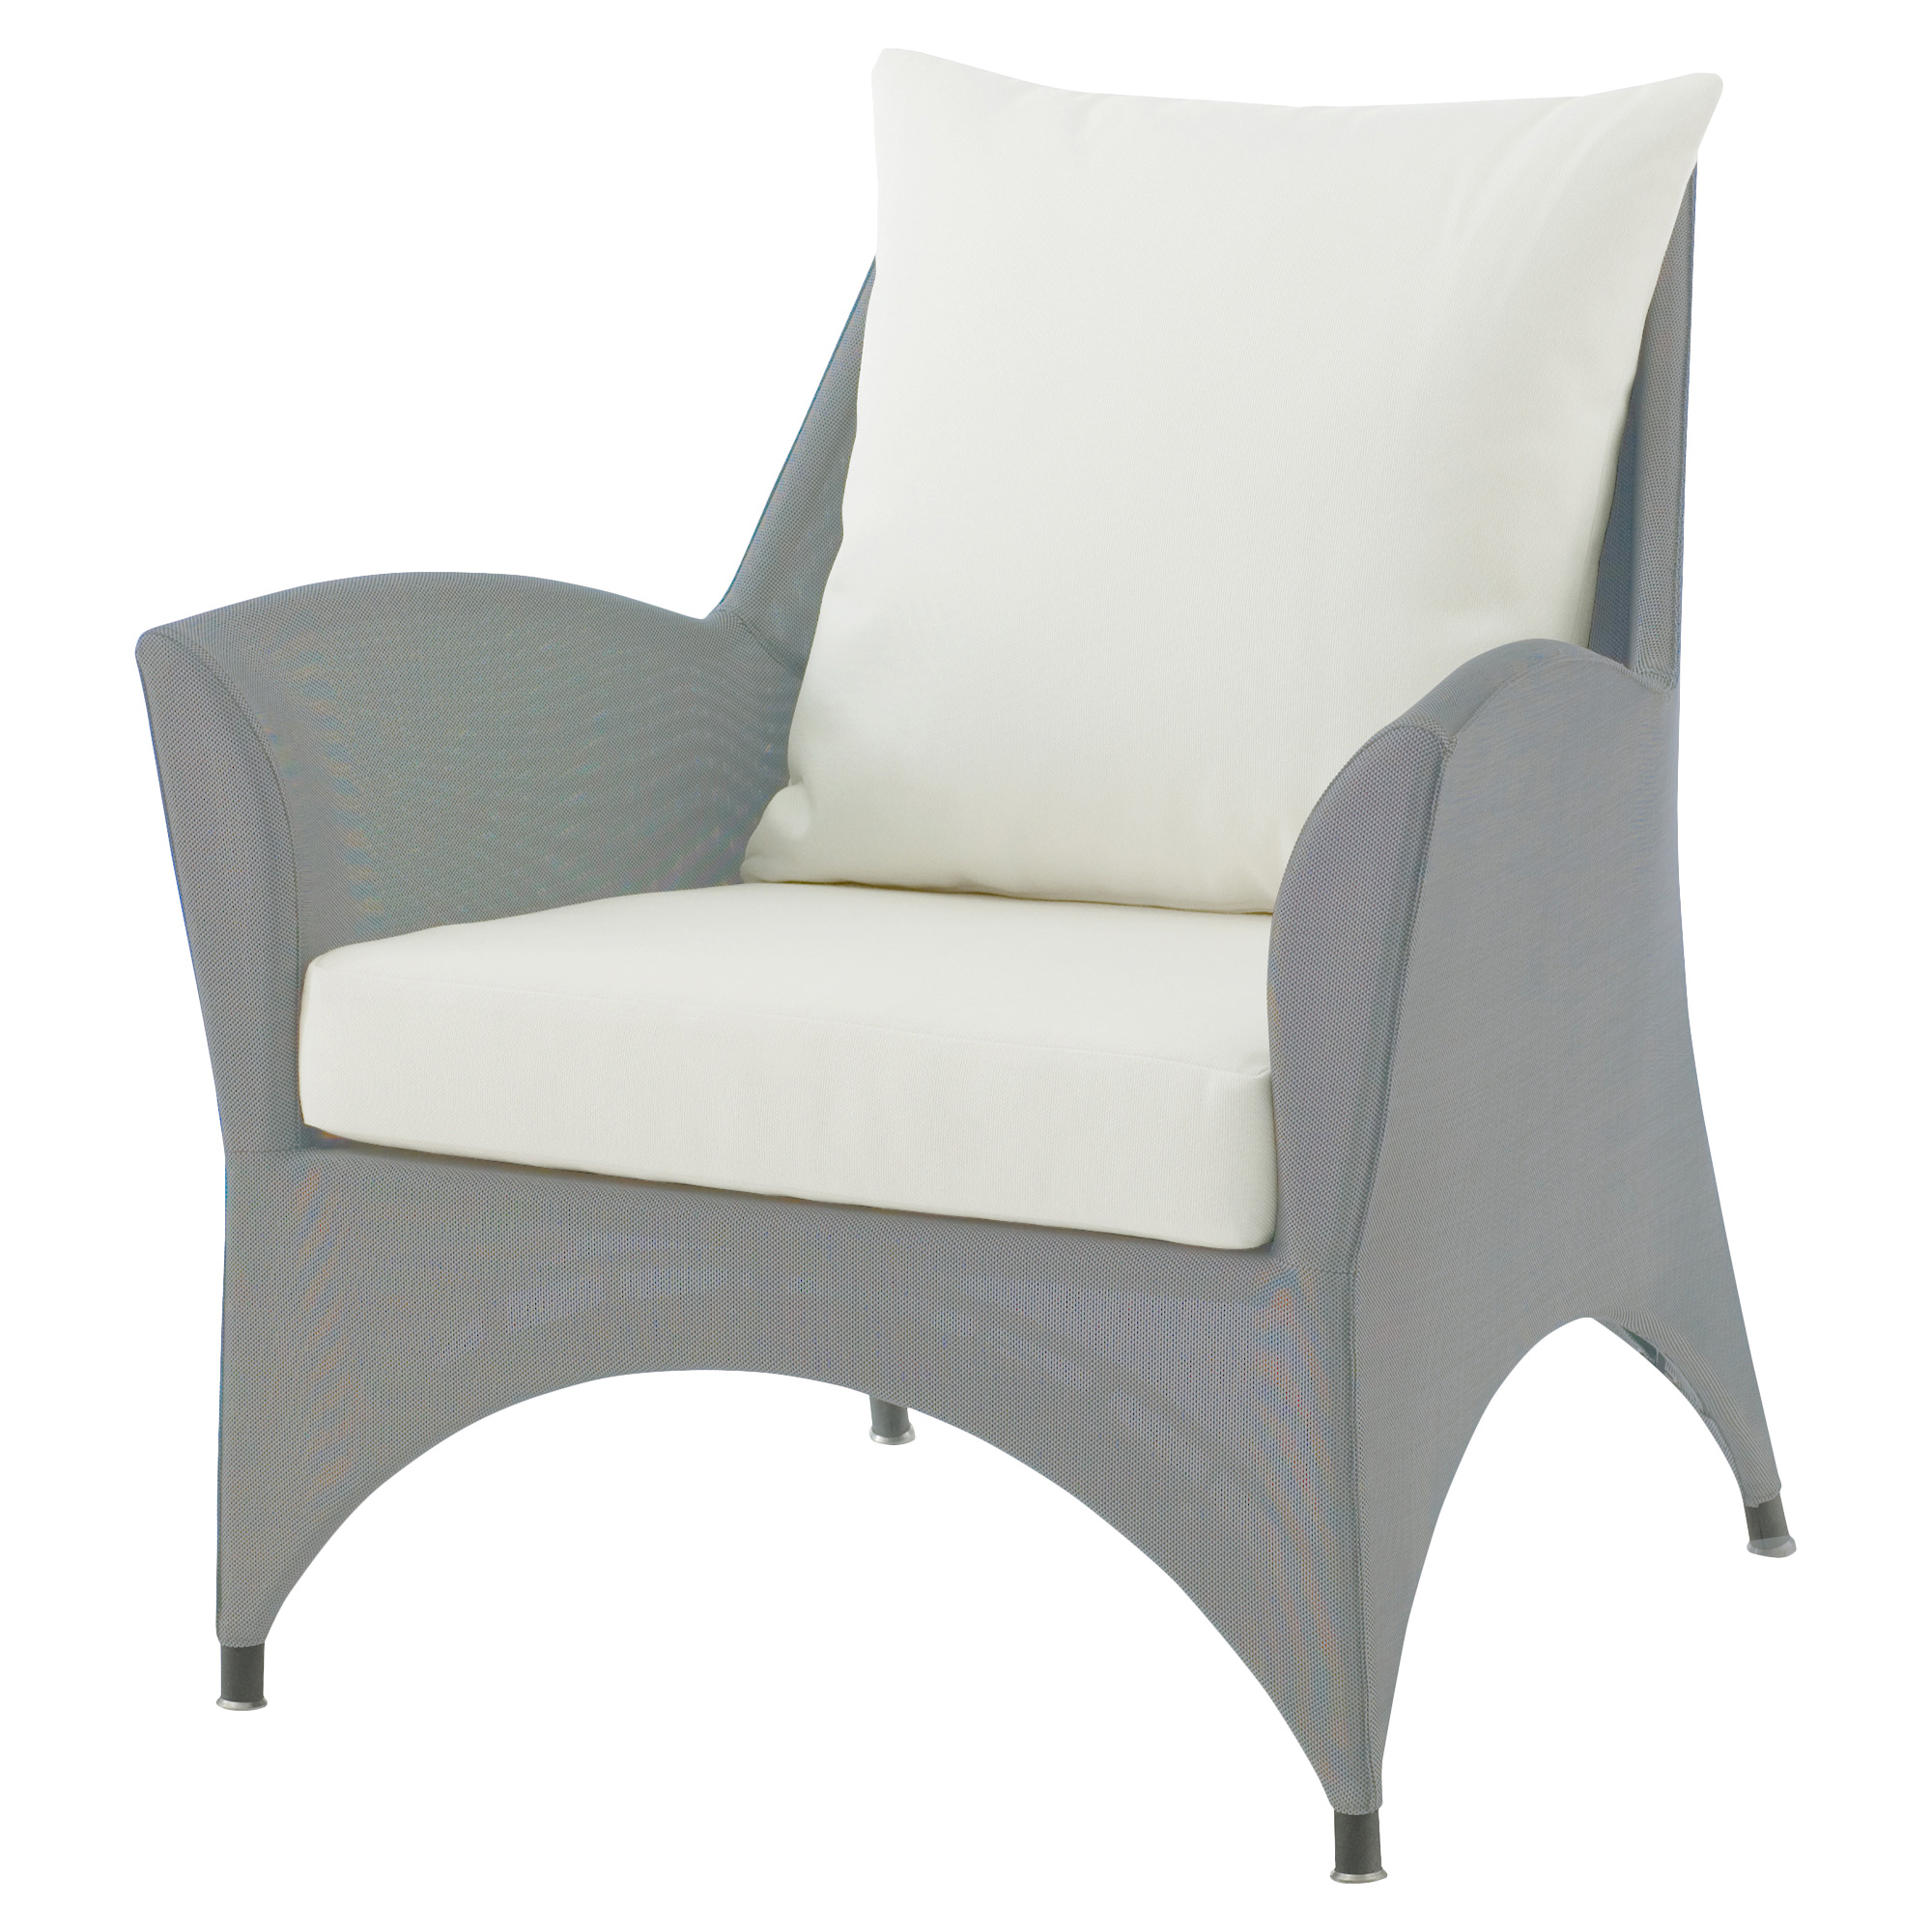 Keenan Contemporary Grey Outdoor Ivory Lounge Chair